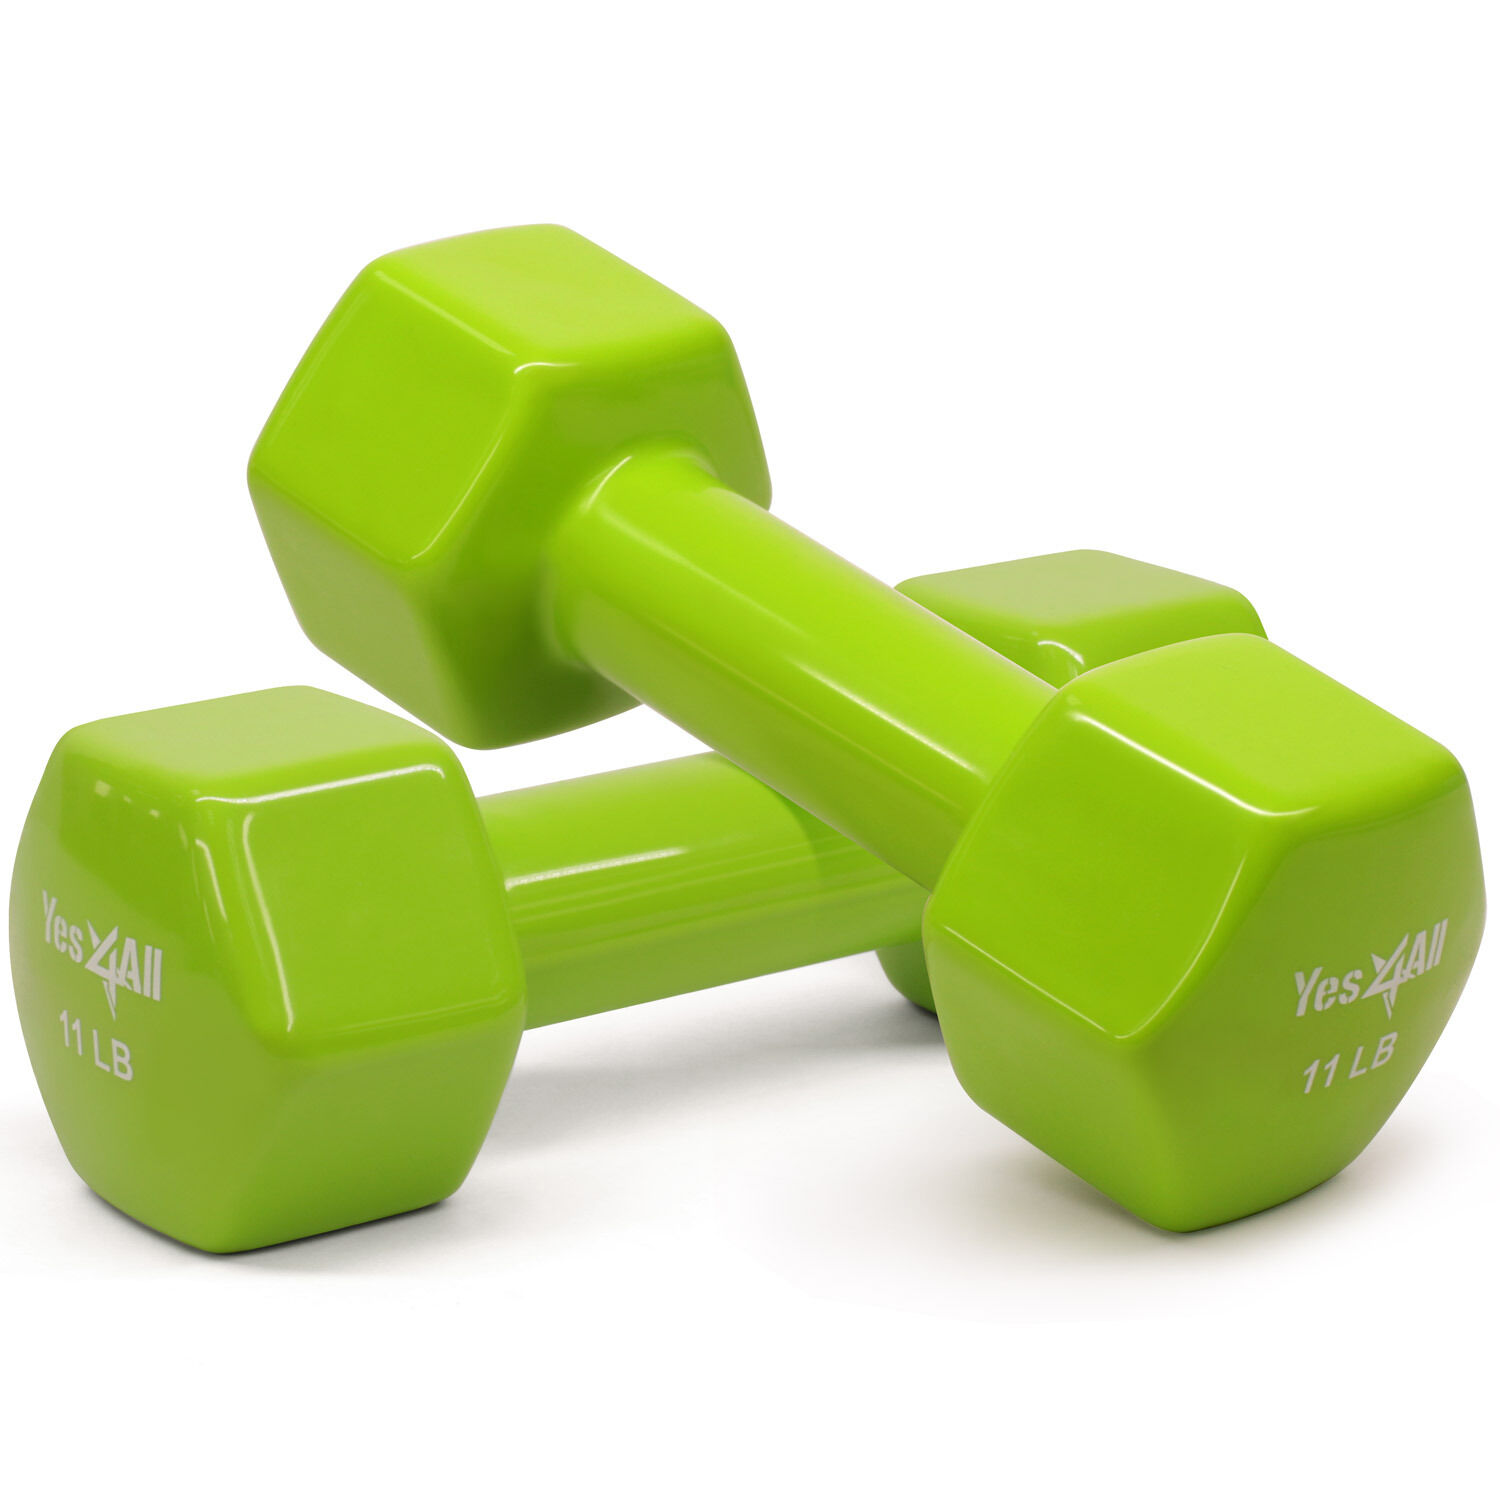 Yes4All Dumbbells PVC Hand Weights 11 lbs Set Dumbbell Exercise - ²7D